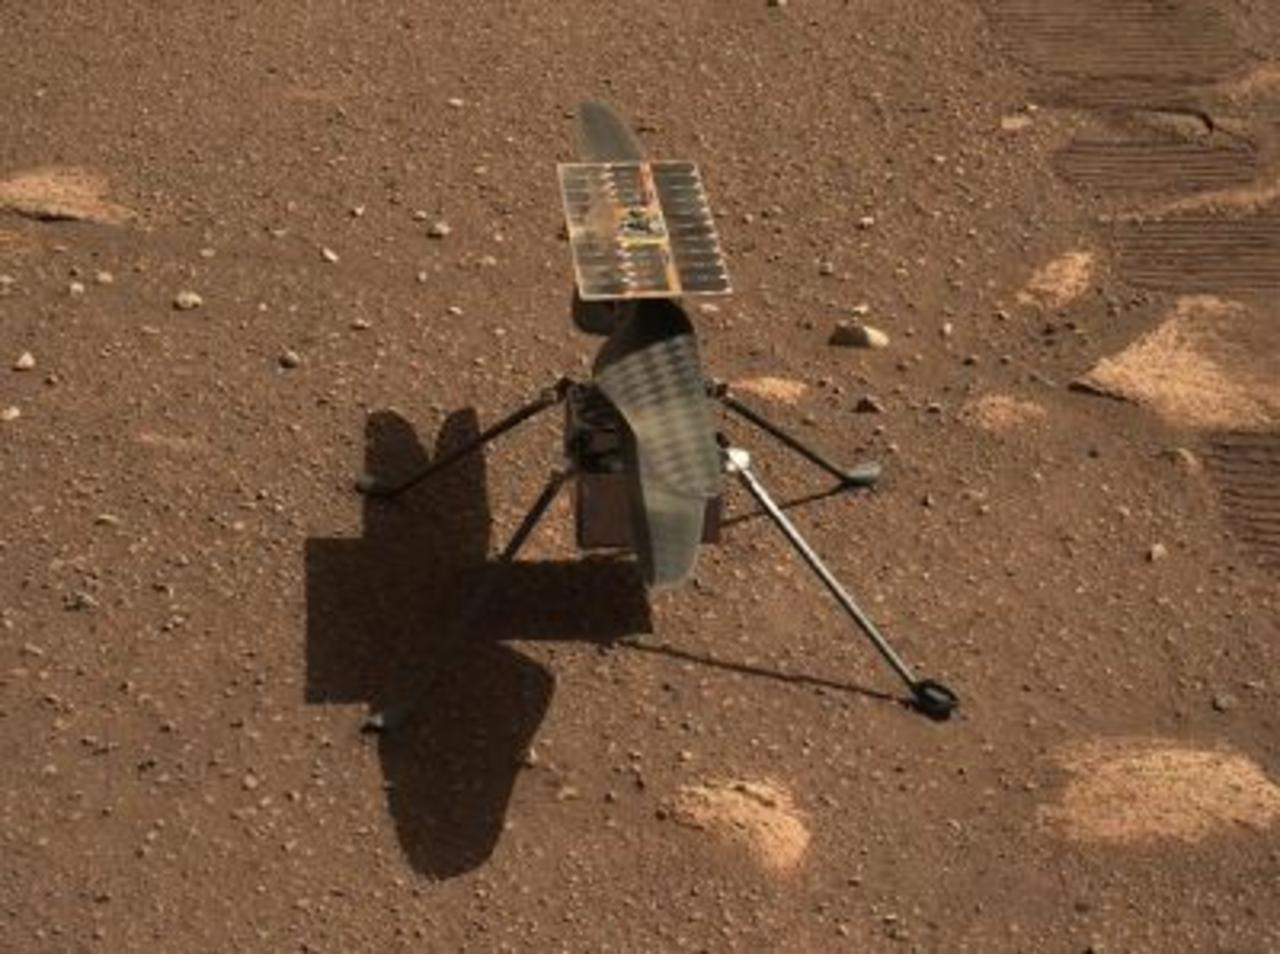 NASA's Mars Helicopter, Ingenuity, Successfully Completes First Flight